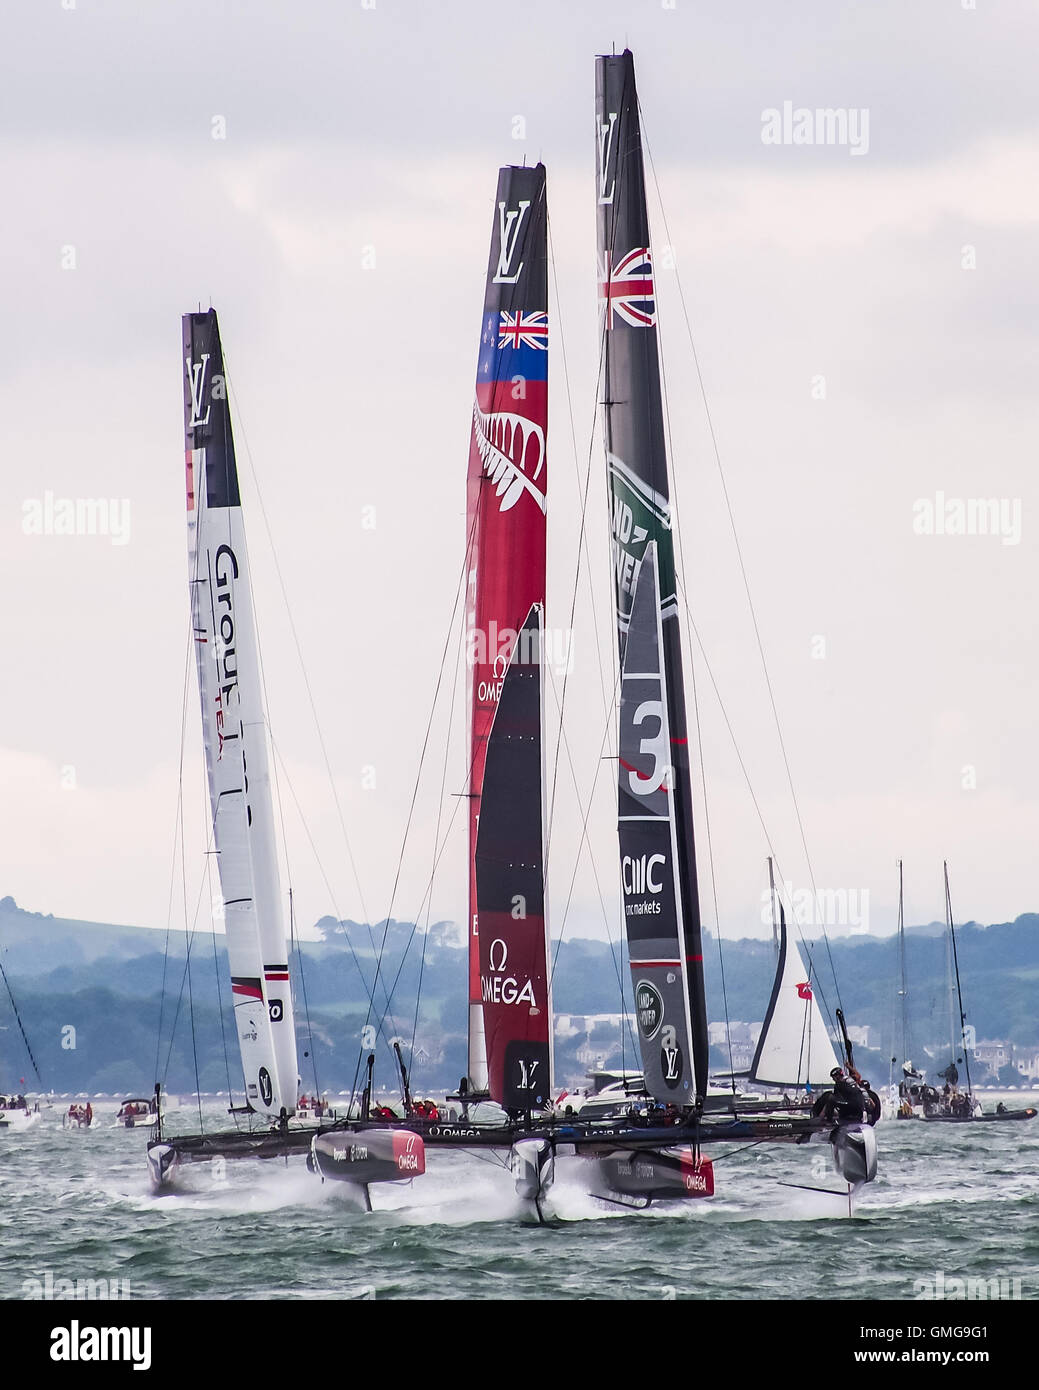 c45-class-catamarans-race-during-the-americas-cup-world-series-in-GMG9G1.jpg